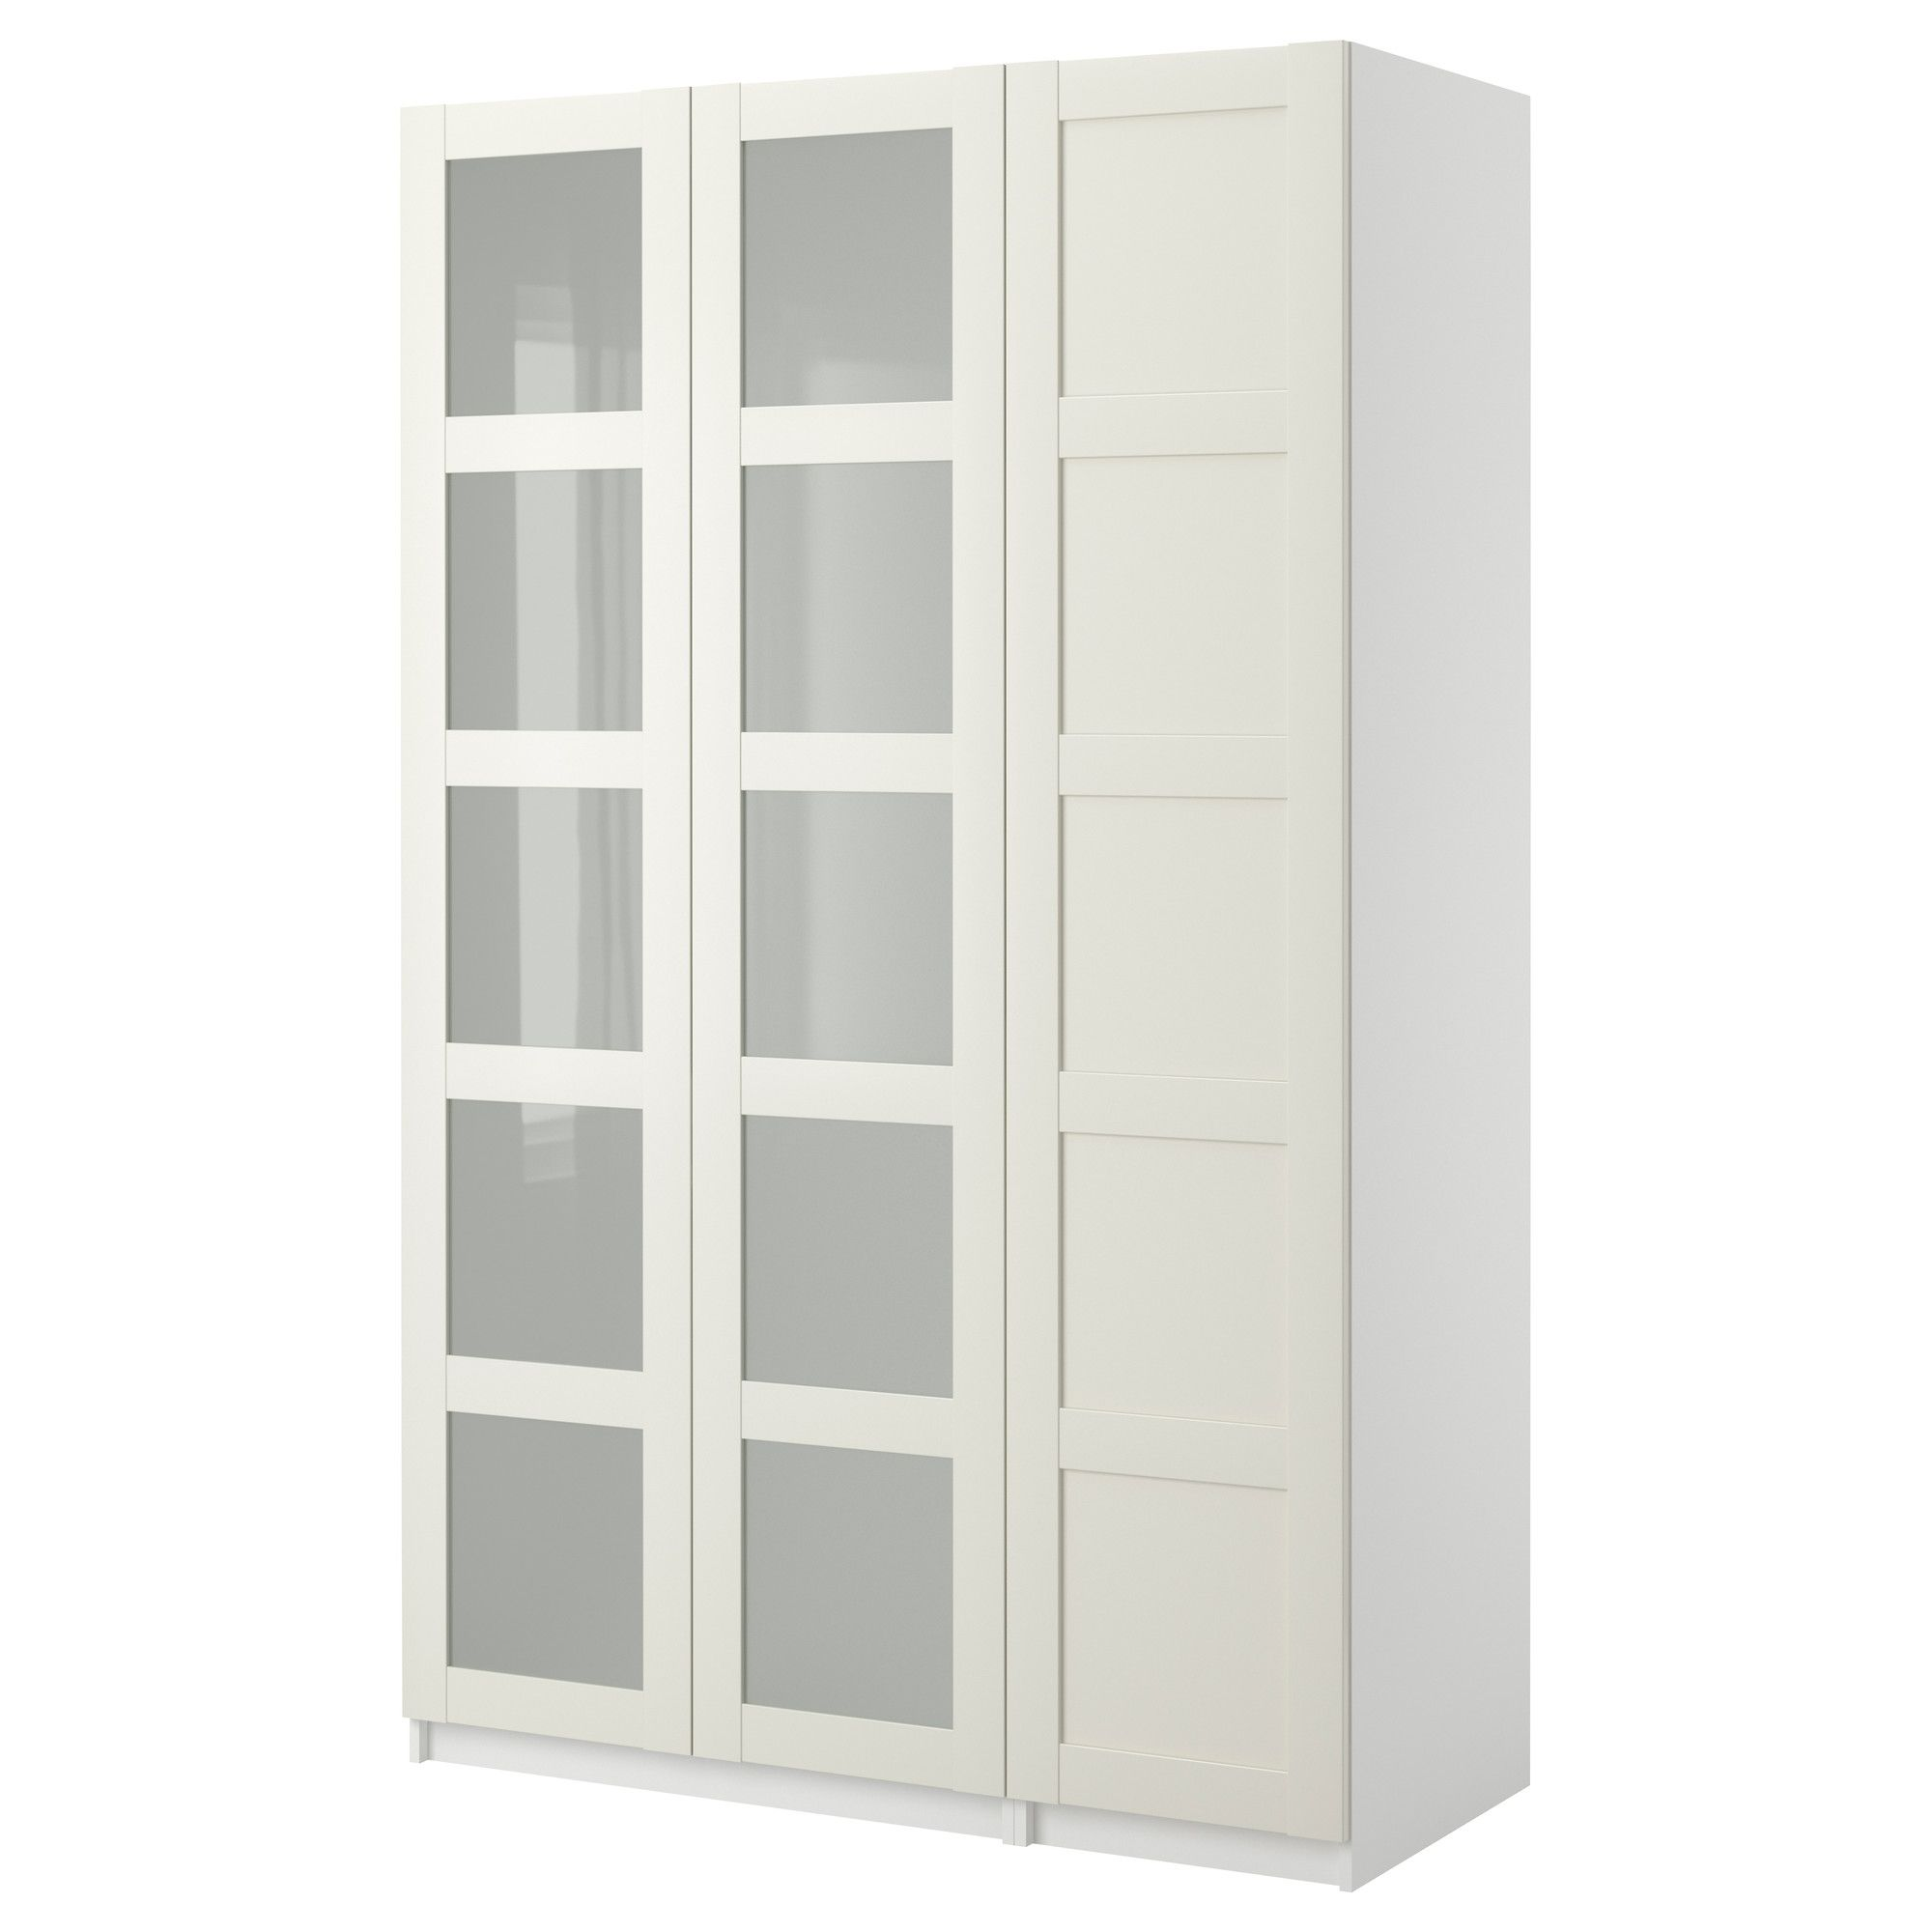 Pax Wardrobe With 3 Doors Bergsbo Frosted Glass White 58 7 8x14 4x93 1 8 Ikea